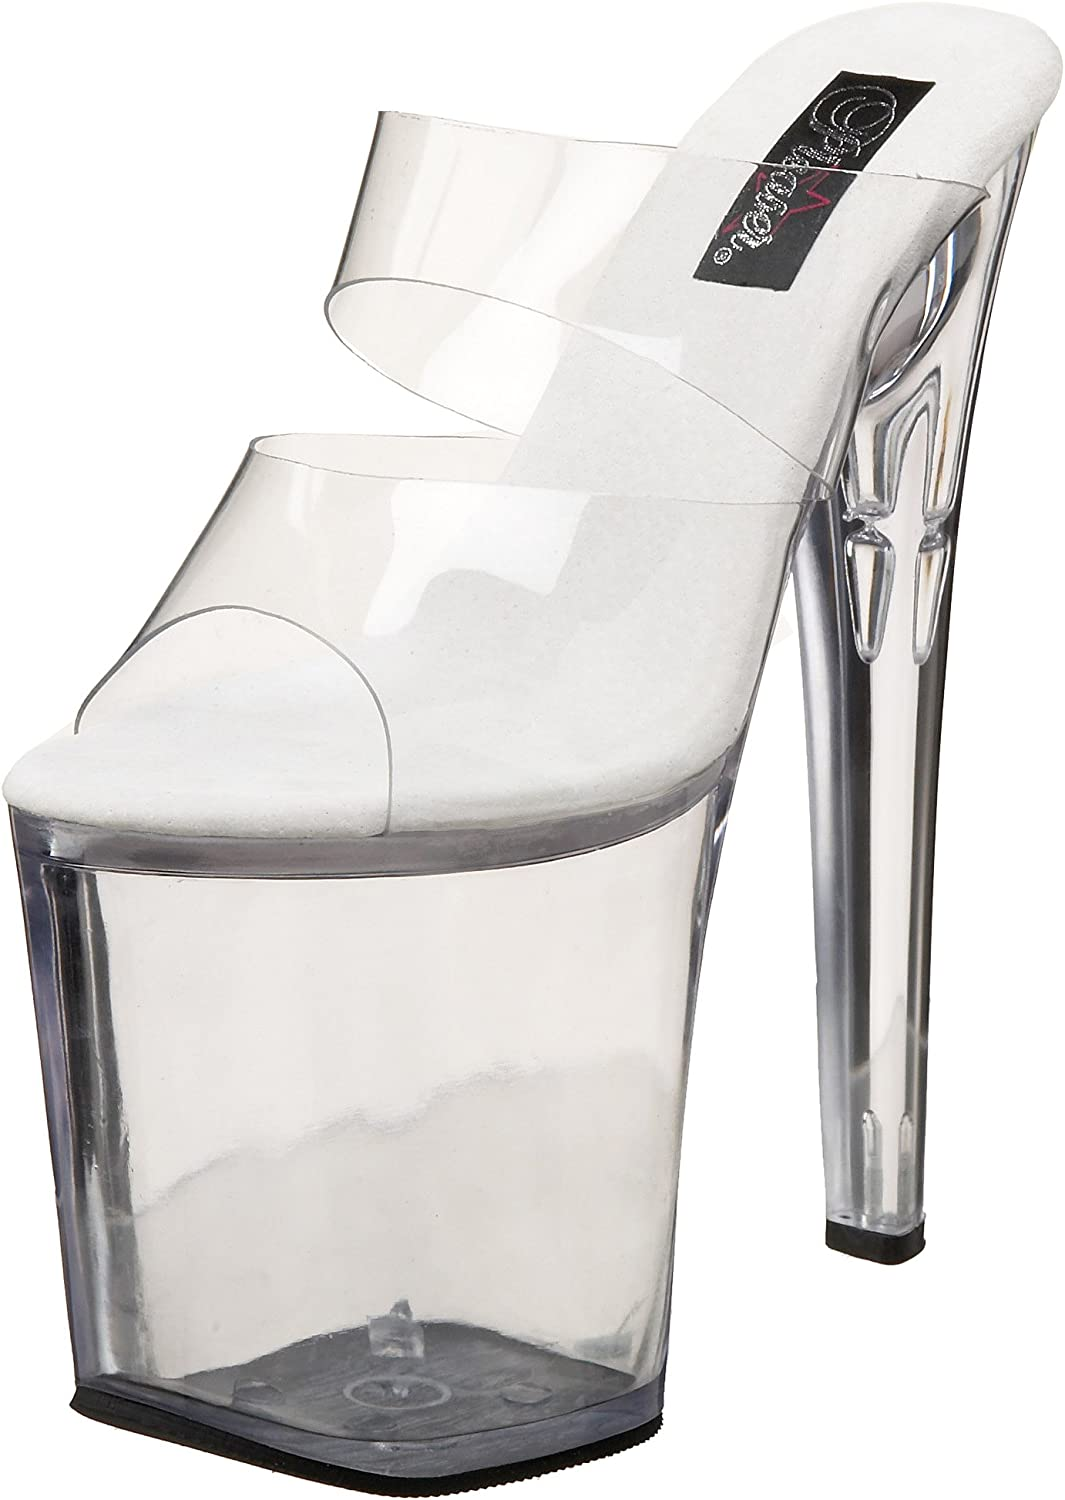 Pleaser Women's Xteme-802 Platform Slide